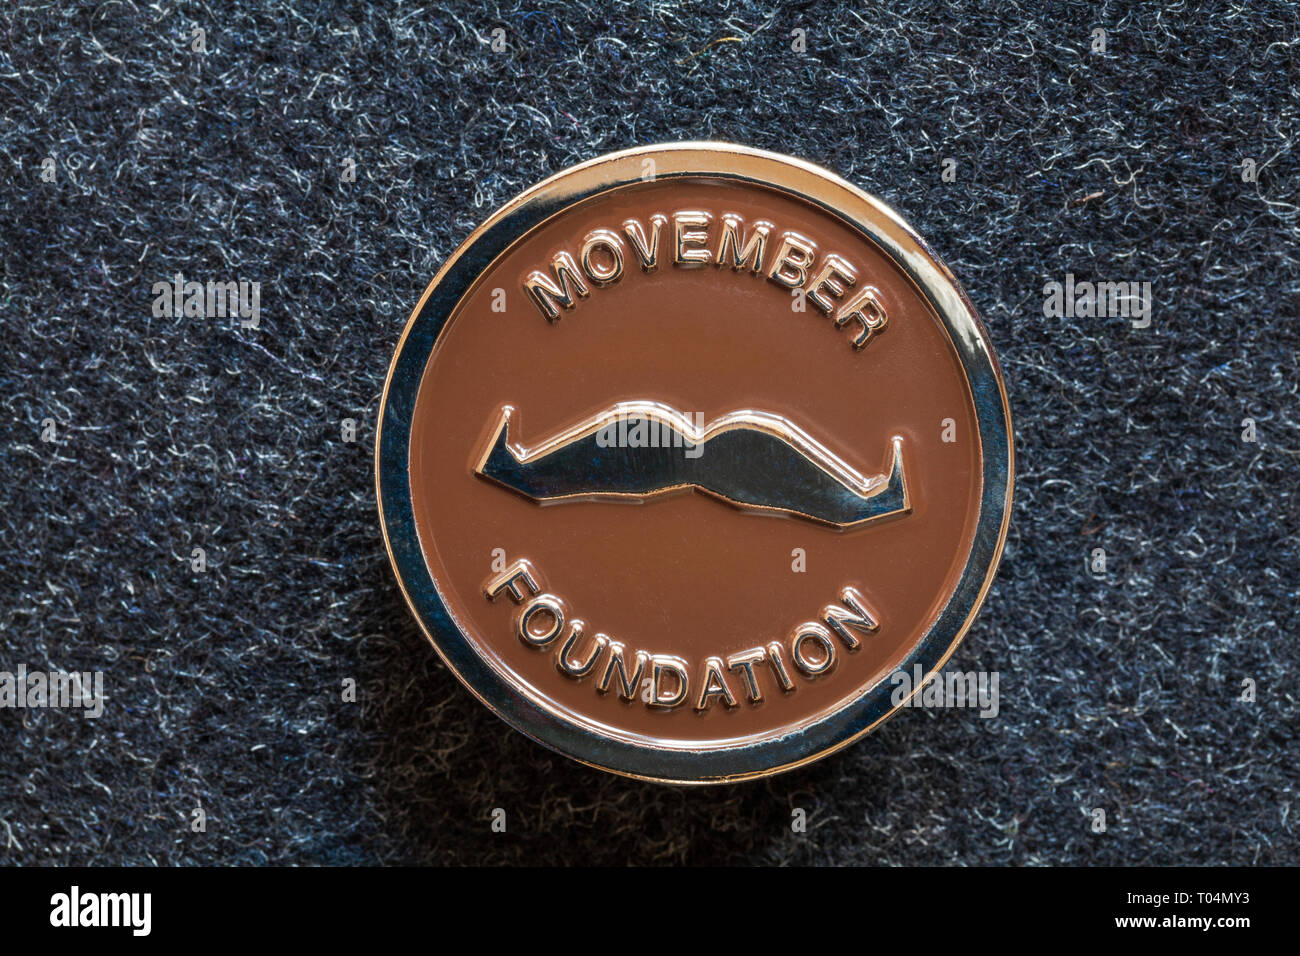 Movember pin badge from Movember Foundation helping men live happier, healthier, longer lives - Movember Foundation - Stock Image